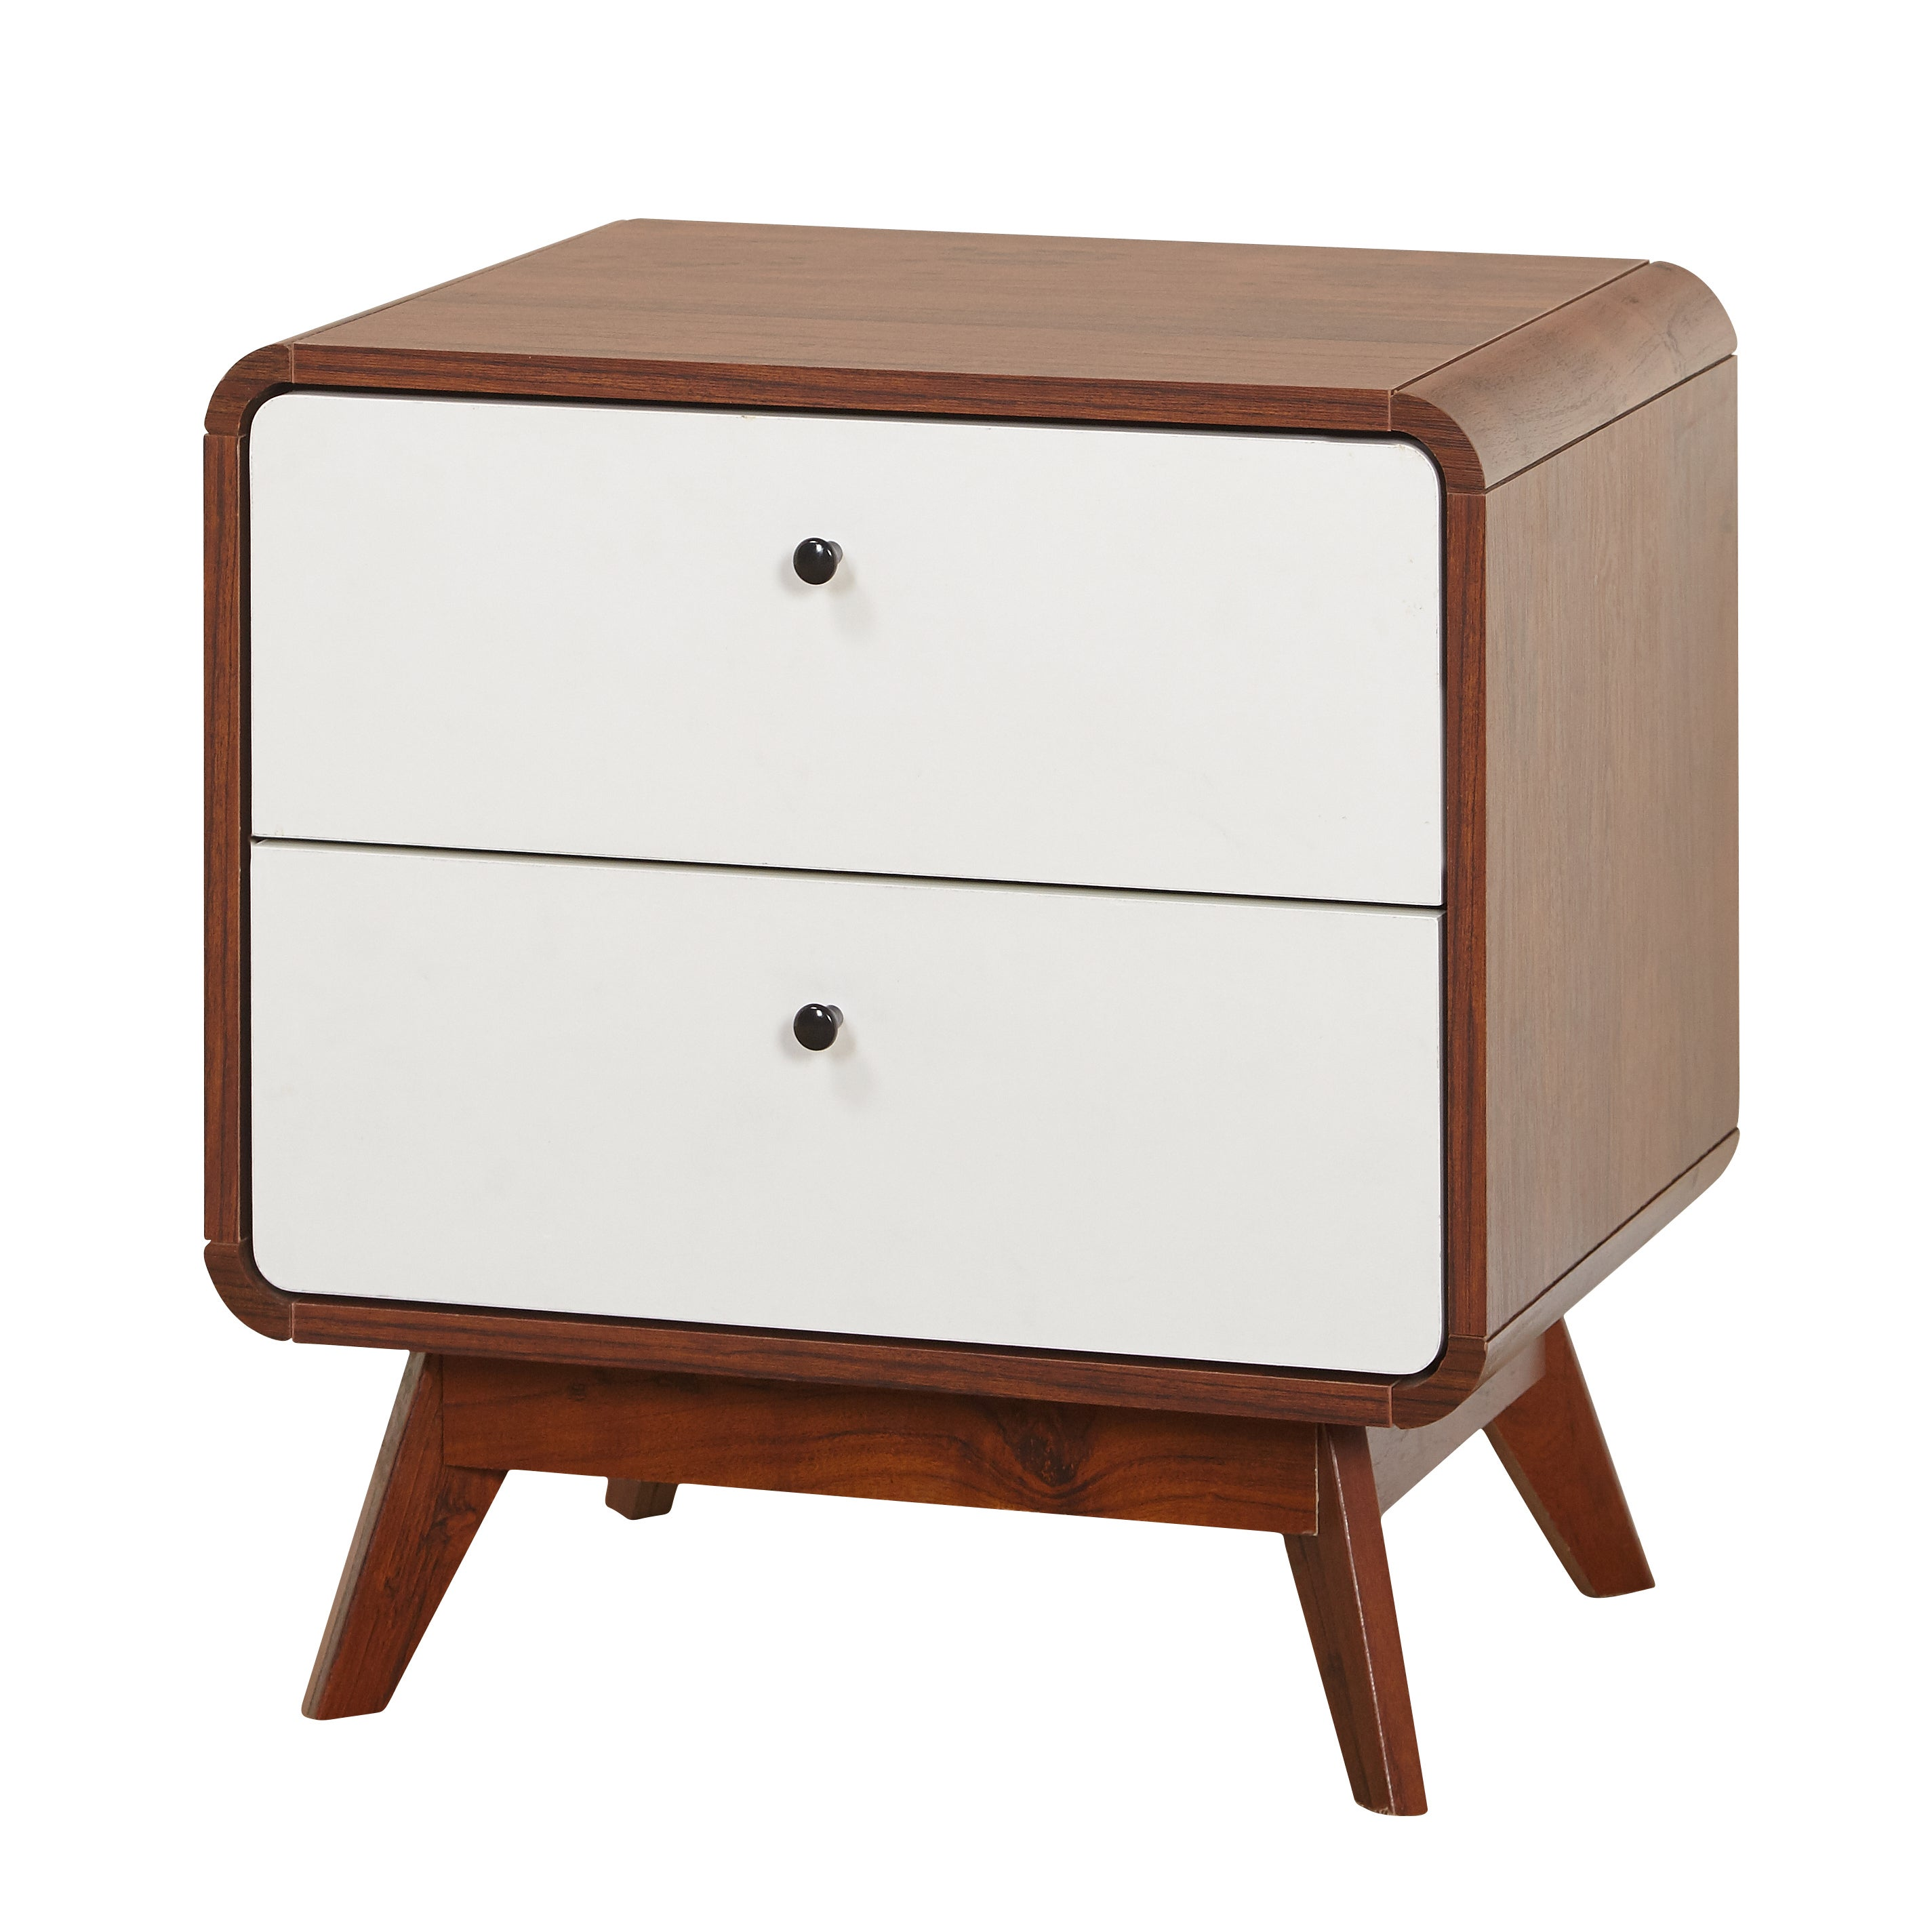 Beautiful Simple Living Cassie Mid Century Night Stand   Free Shipping Today    Overstock.com   20217070 Pictures Gallery